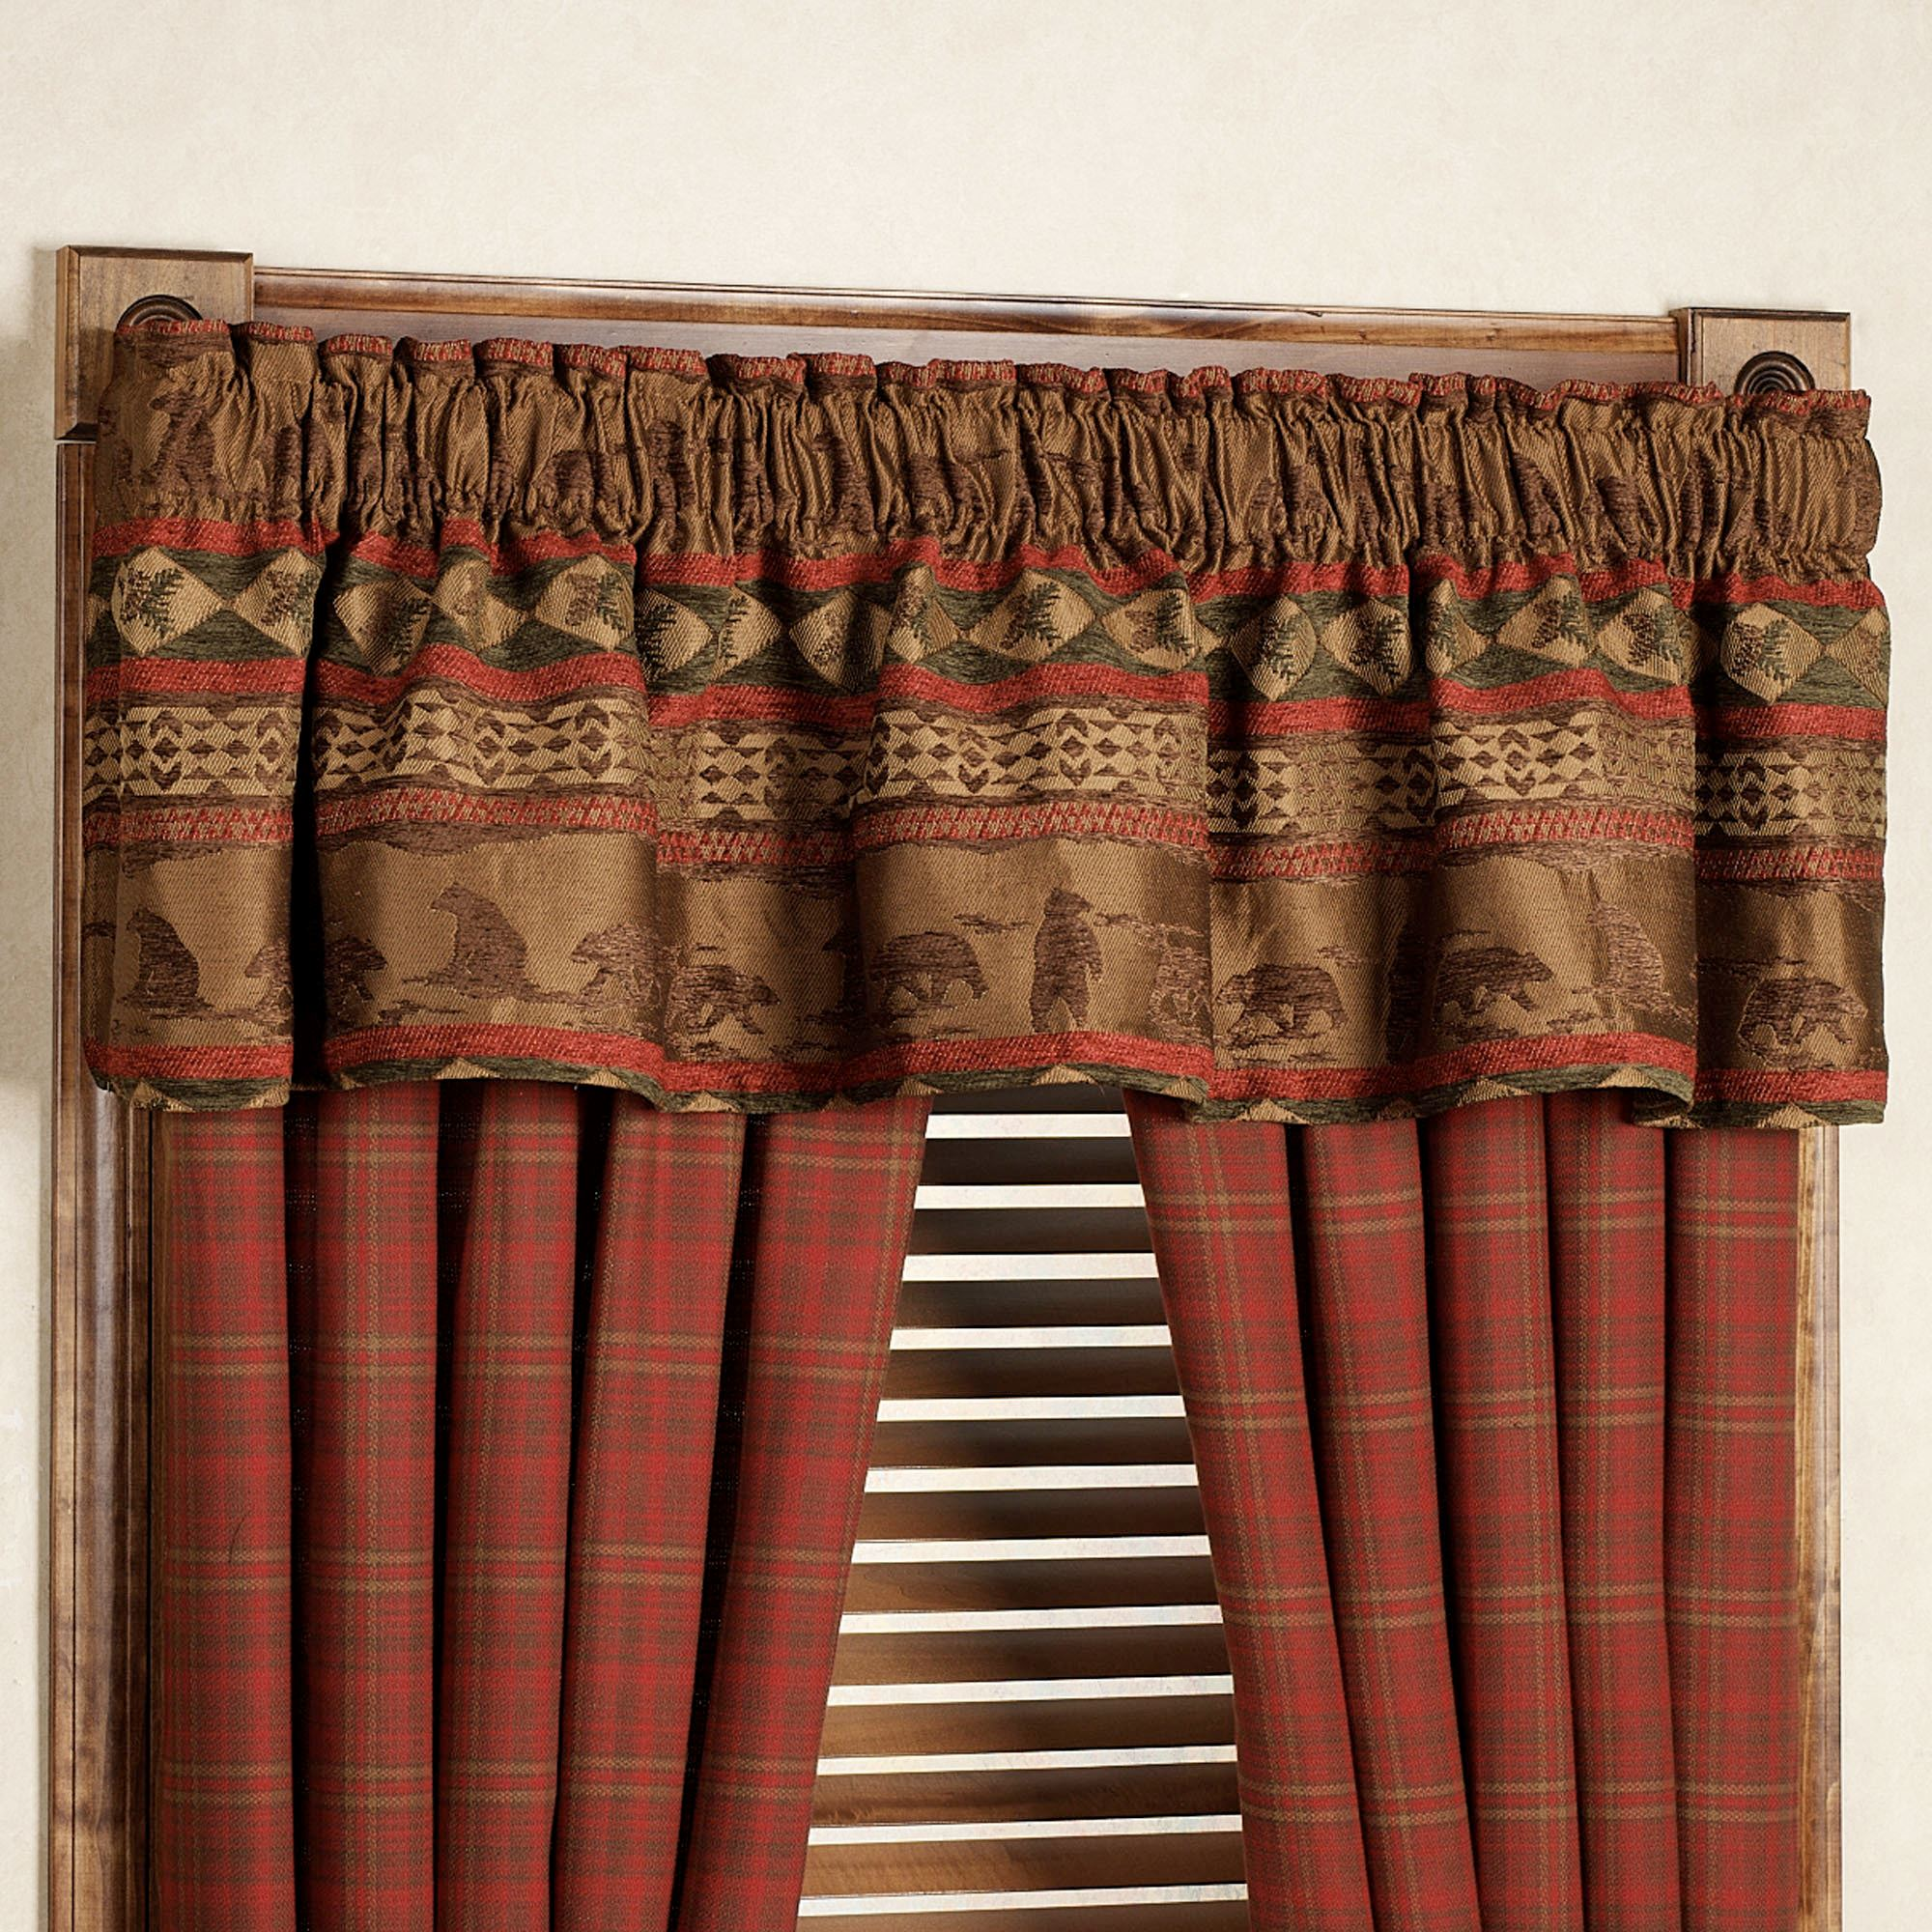 Ideal Cascade Lodge Window Treatments LA93